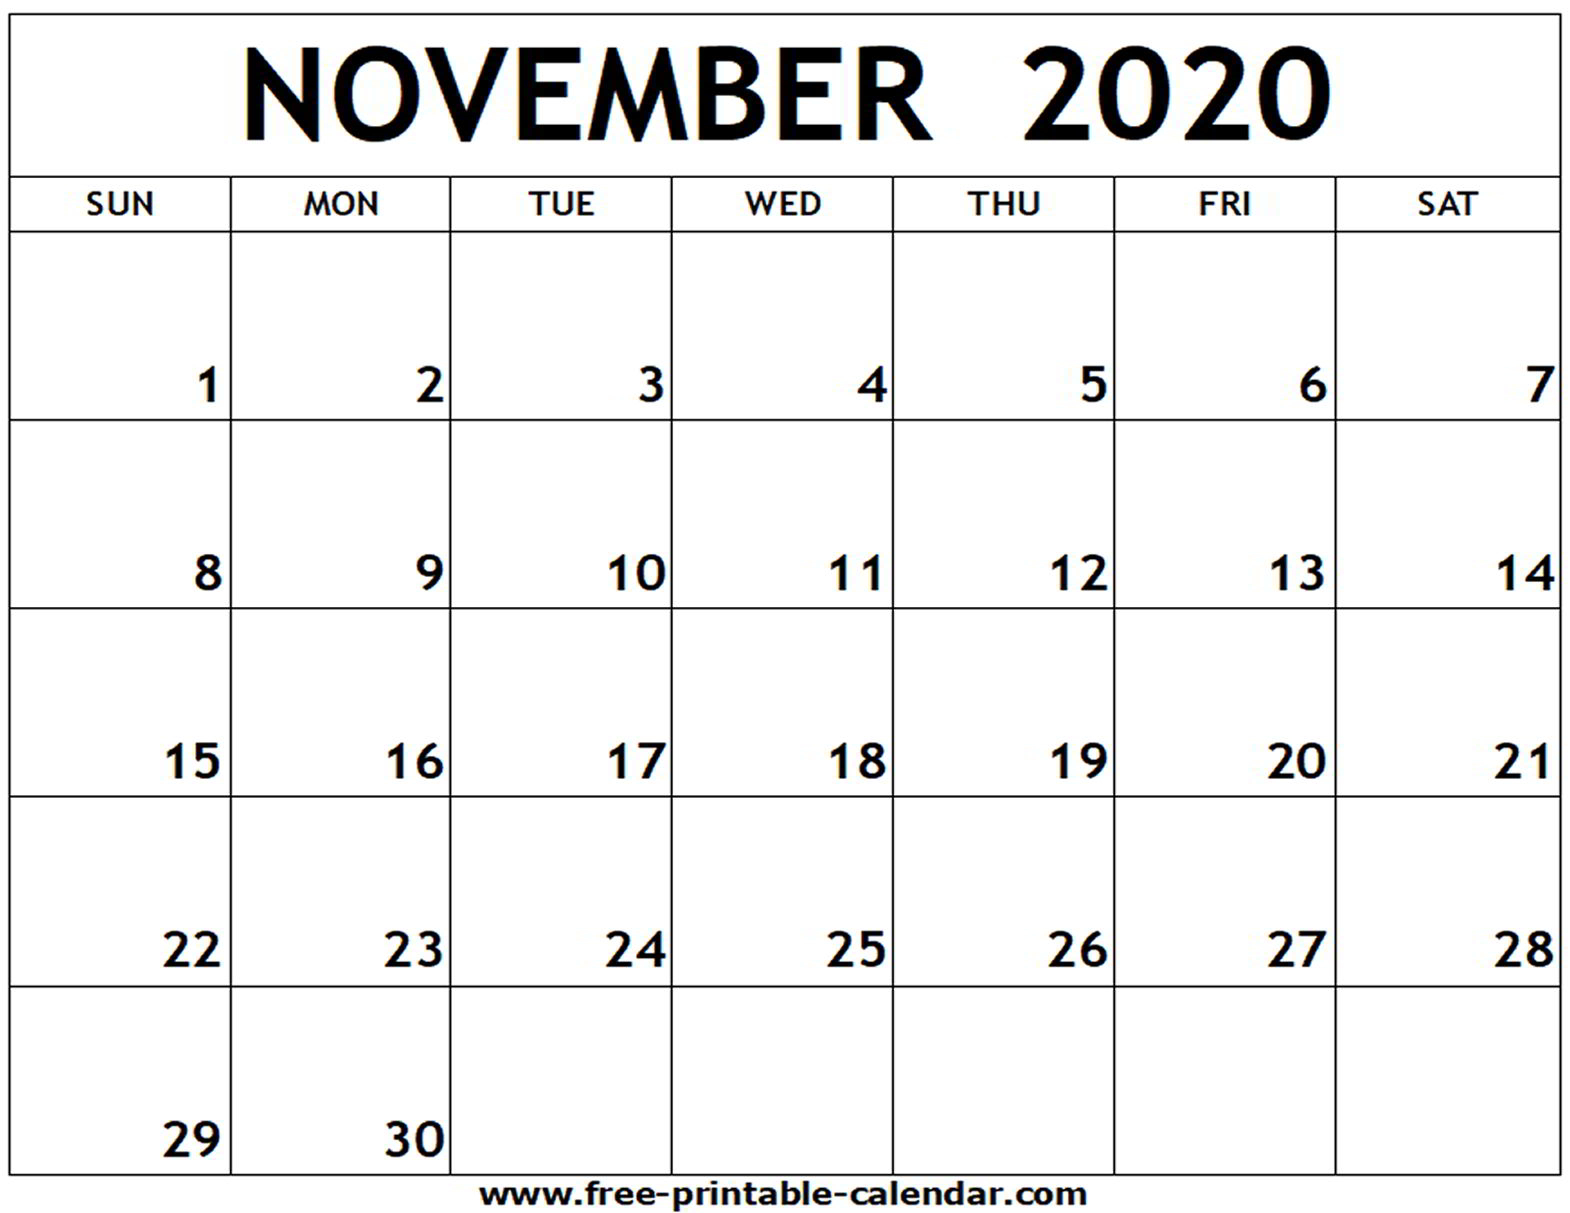 November 2020 Calendar Template  Bolan.horizonconsulting.co inside November 2020 Calendar Excel